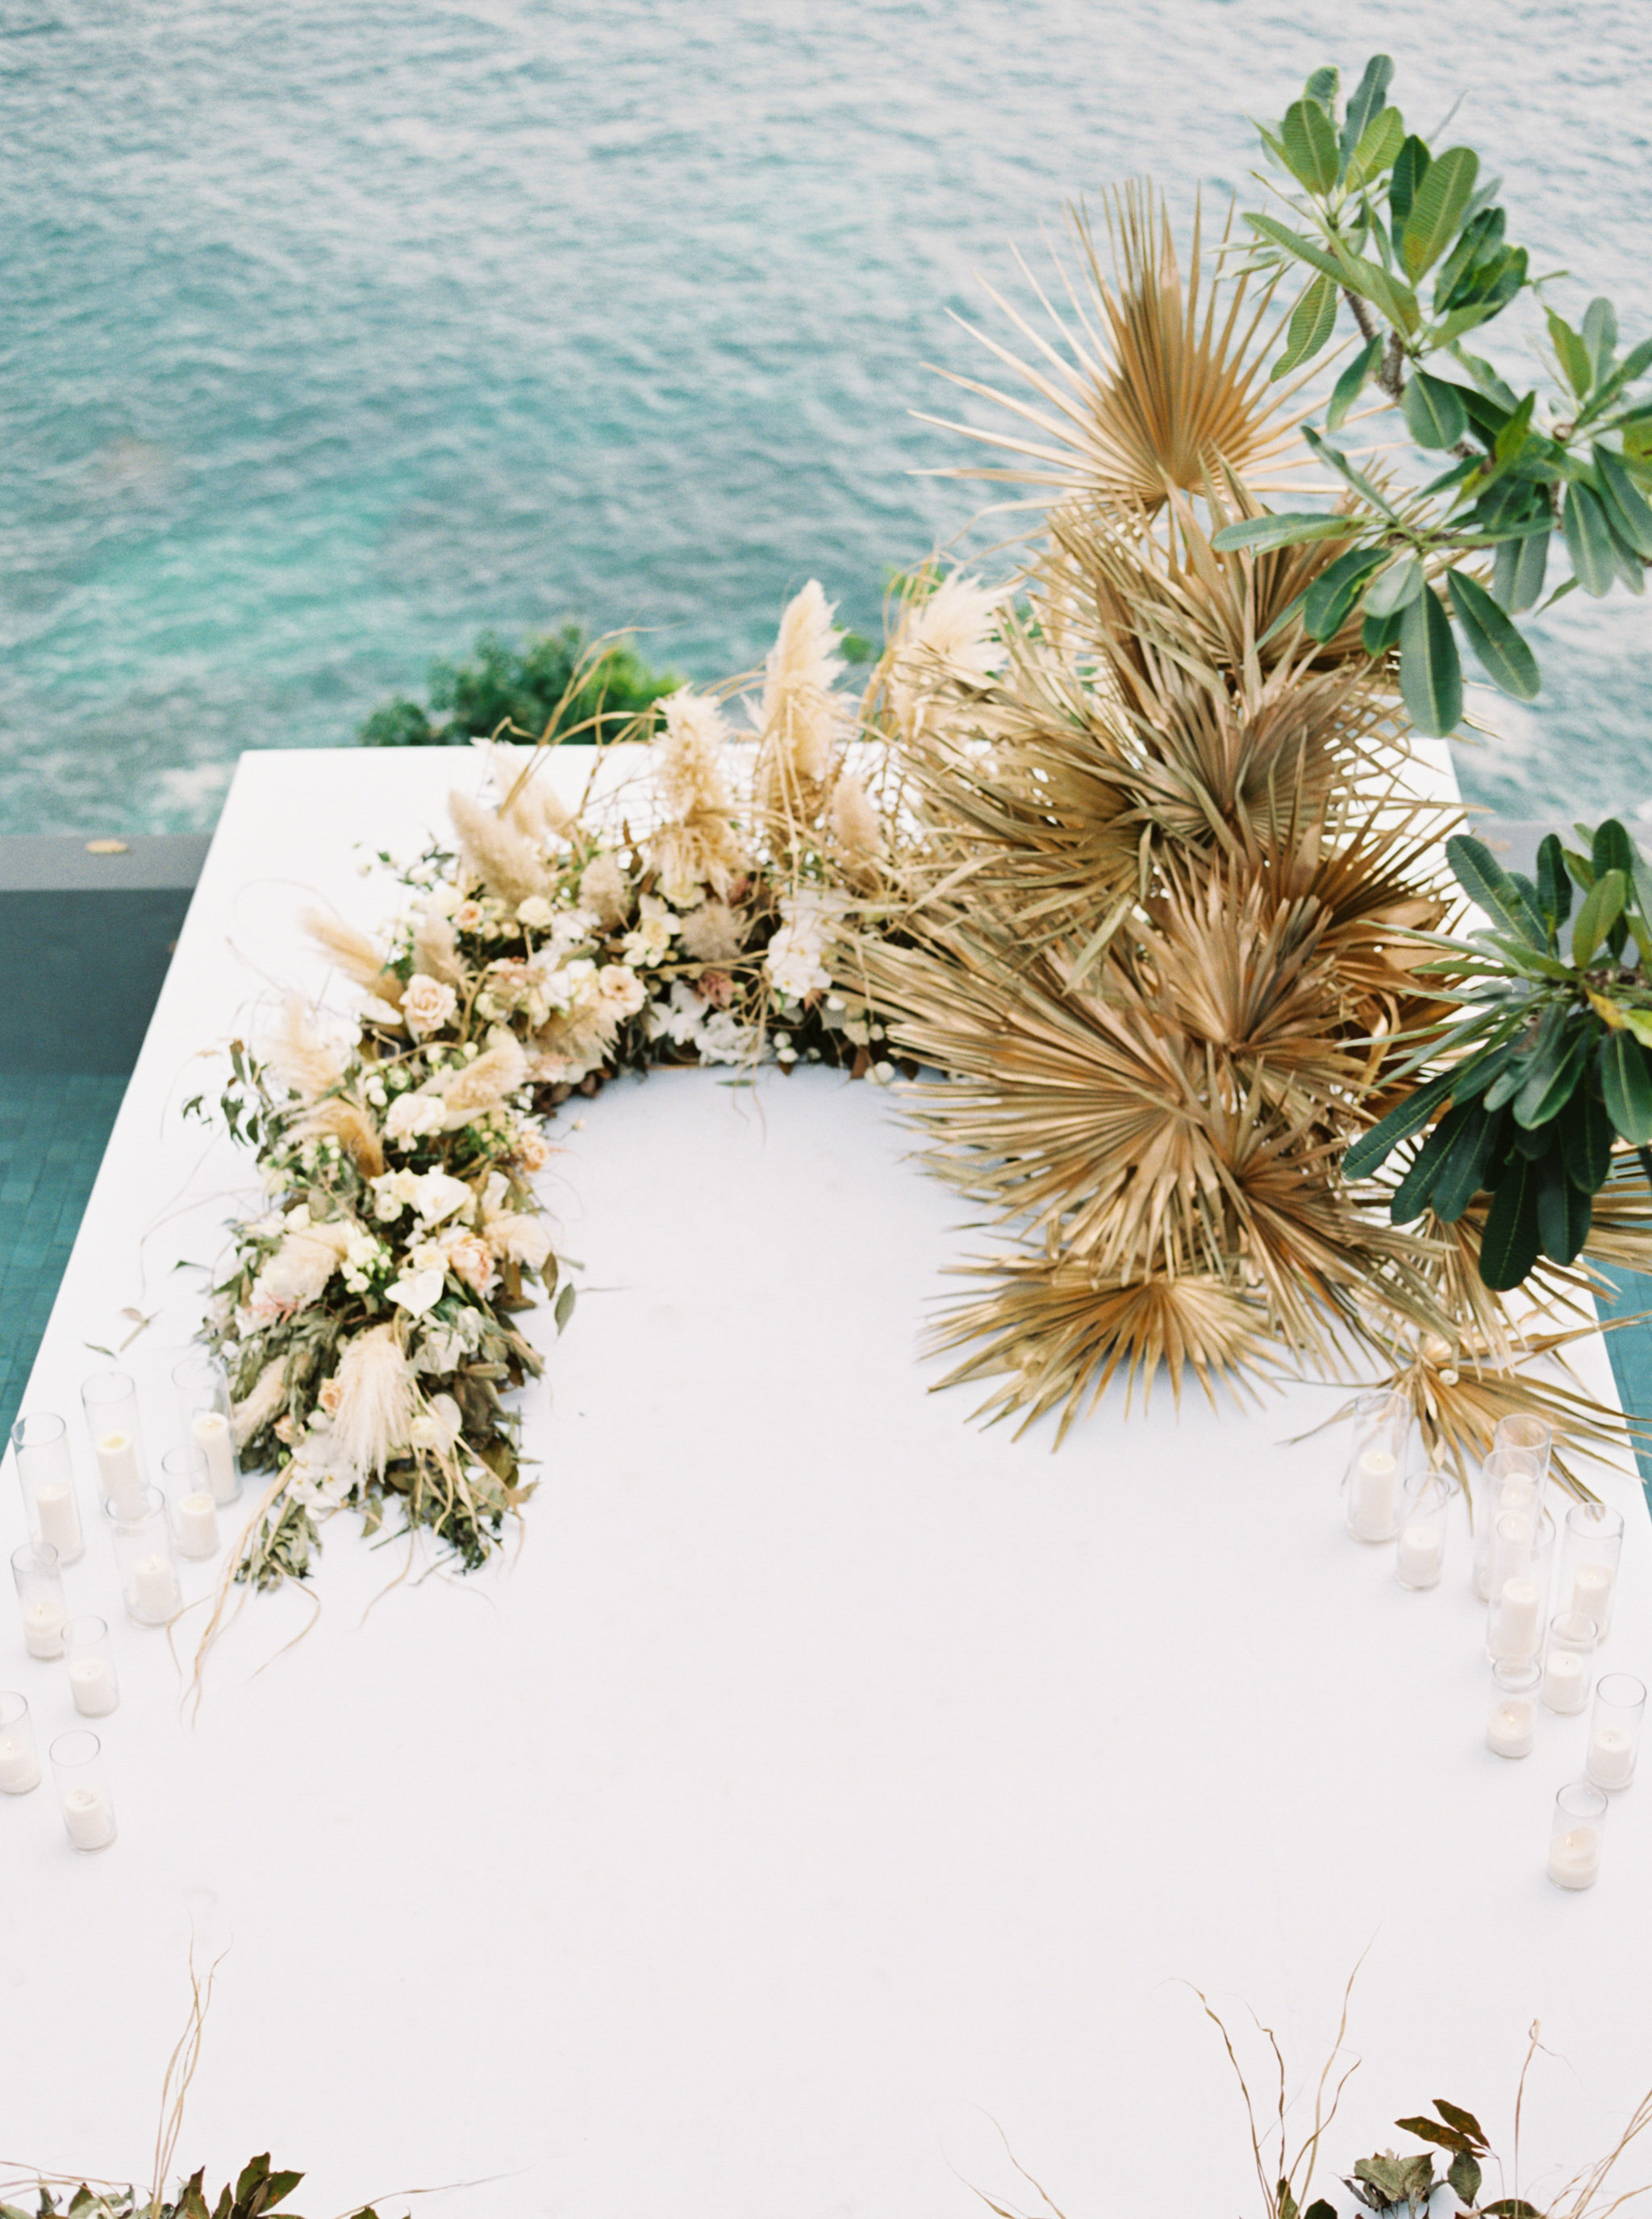 Destination Wedding at The Aquila Luxury Villas in Phuket Thailand Fine Art Film Wedding Photographer Sheri McMahon-00012-12.jpg